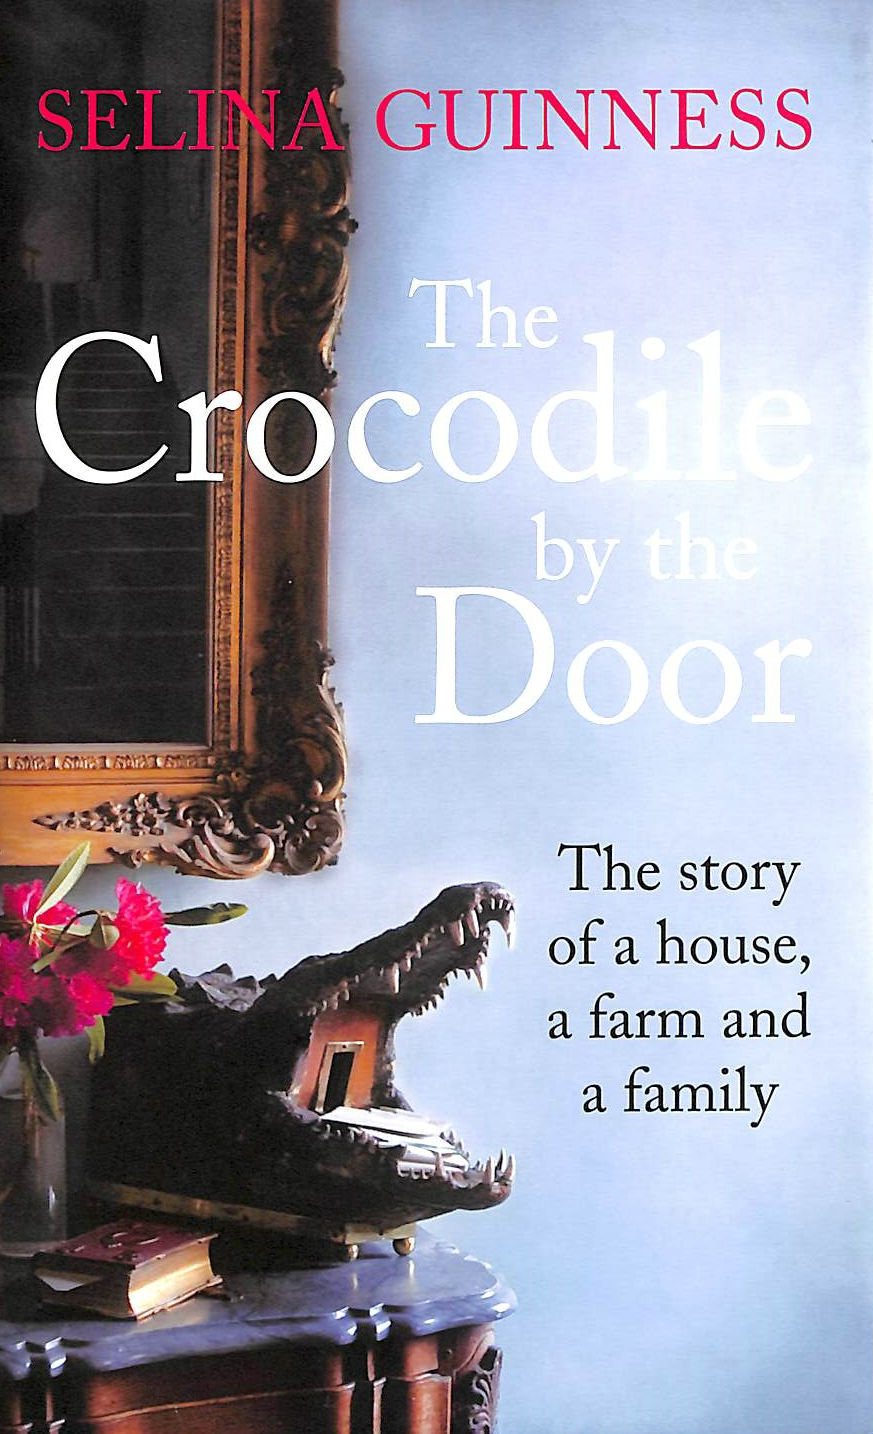 Image for The Crocodile by the Door: The Story of a House, a Farm and a Family